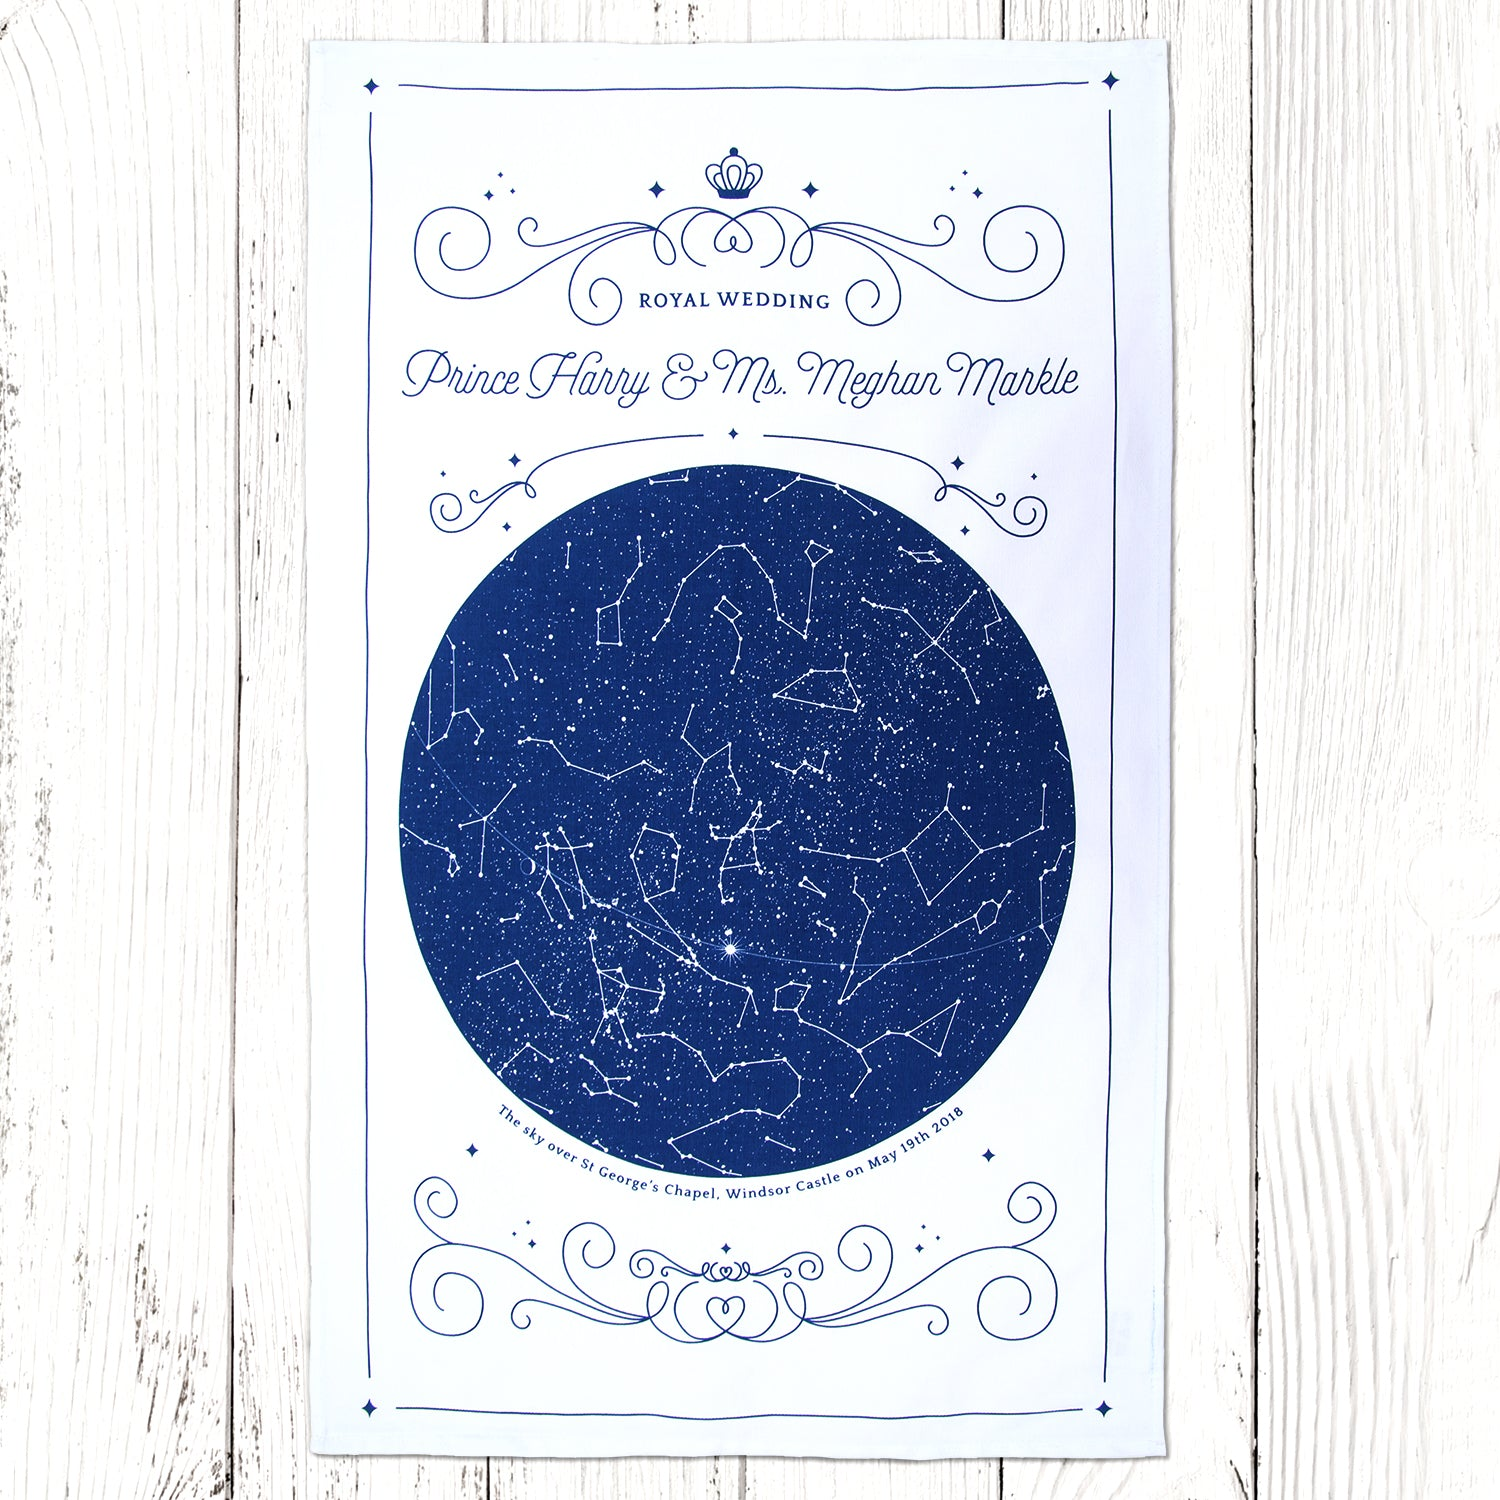 Harry and Meghan wedding souvenir tea towel blue print on white with the sky over St.George's Chapel